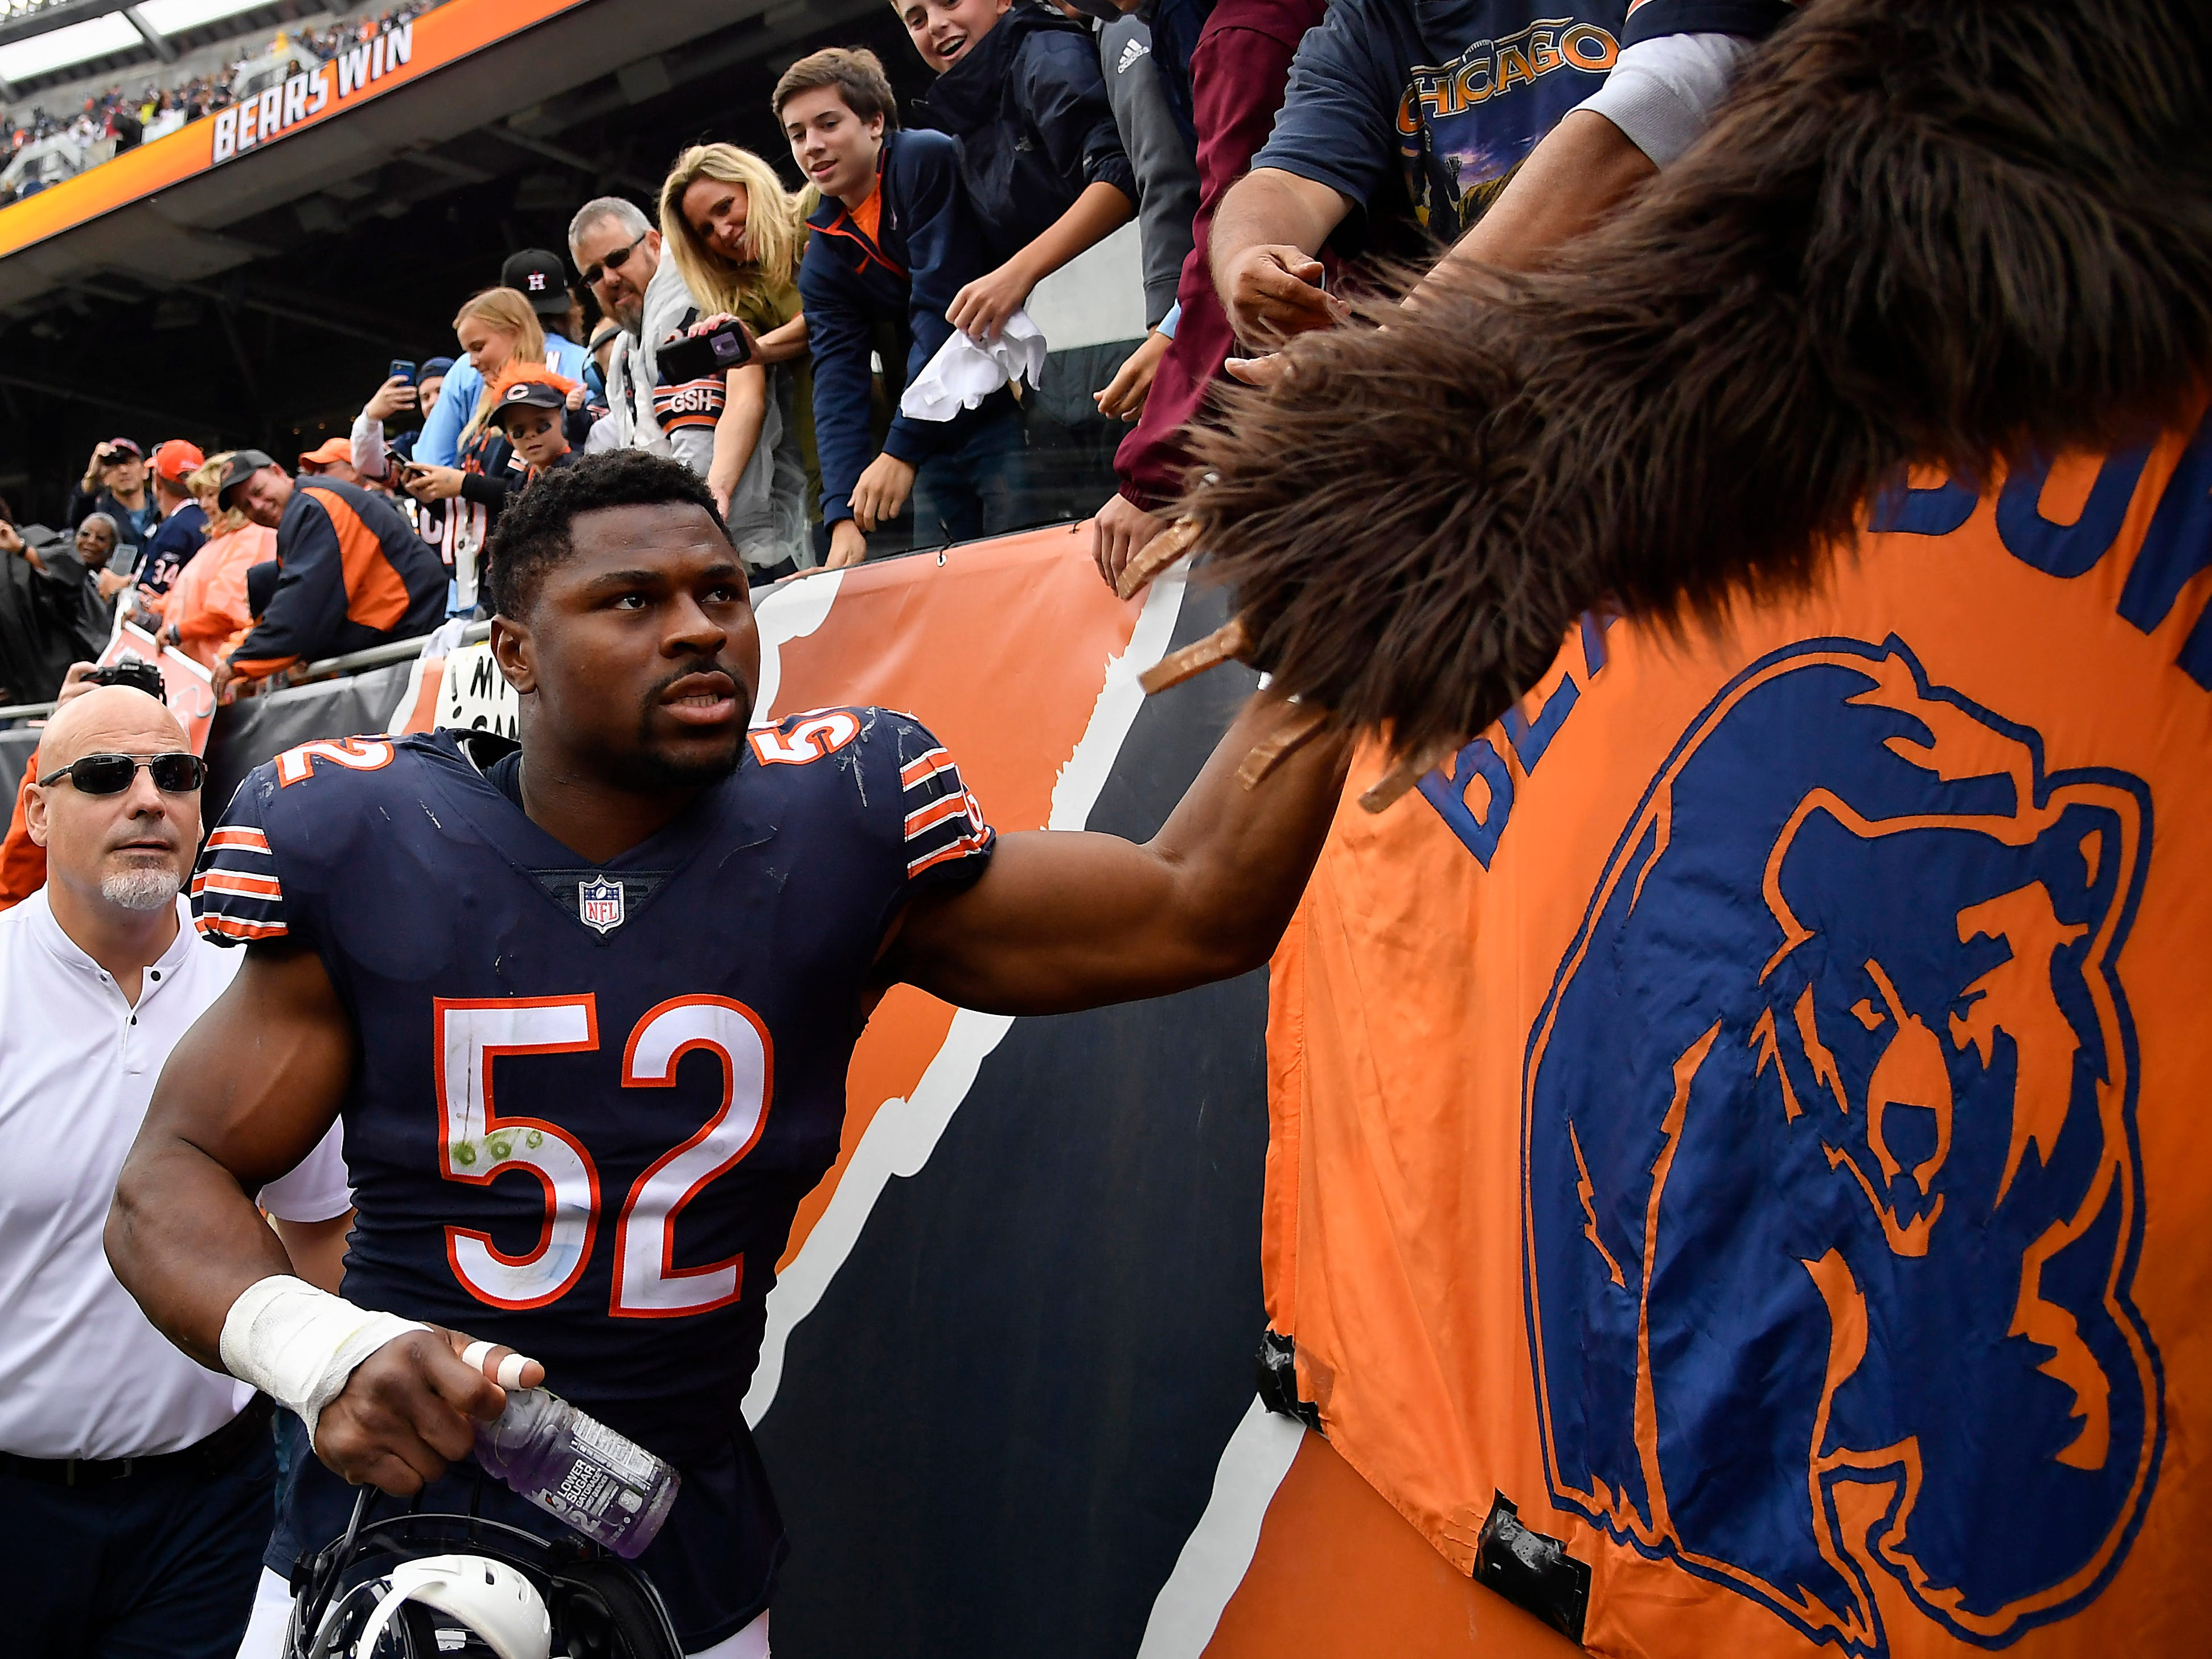 14. Bears (18): Khalil Mack MVP train? Chicago's newest transcendent linebacker has at least one sack and forced fumble in every game for first-place team.